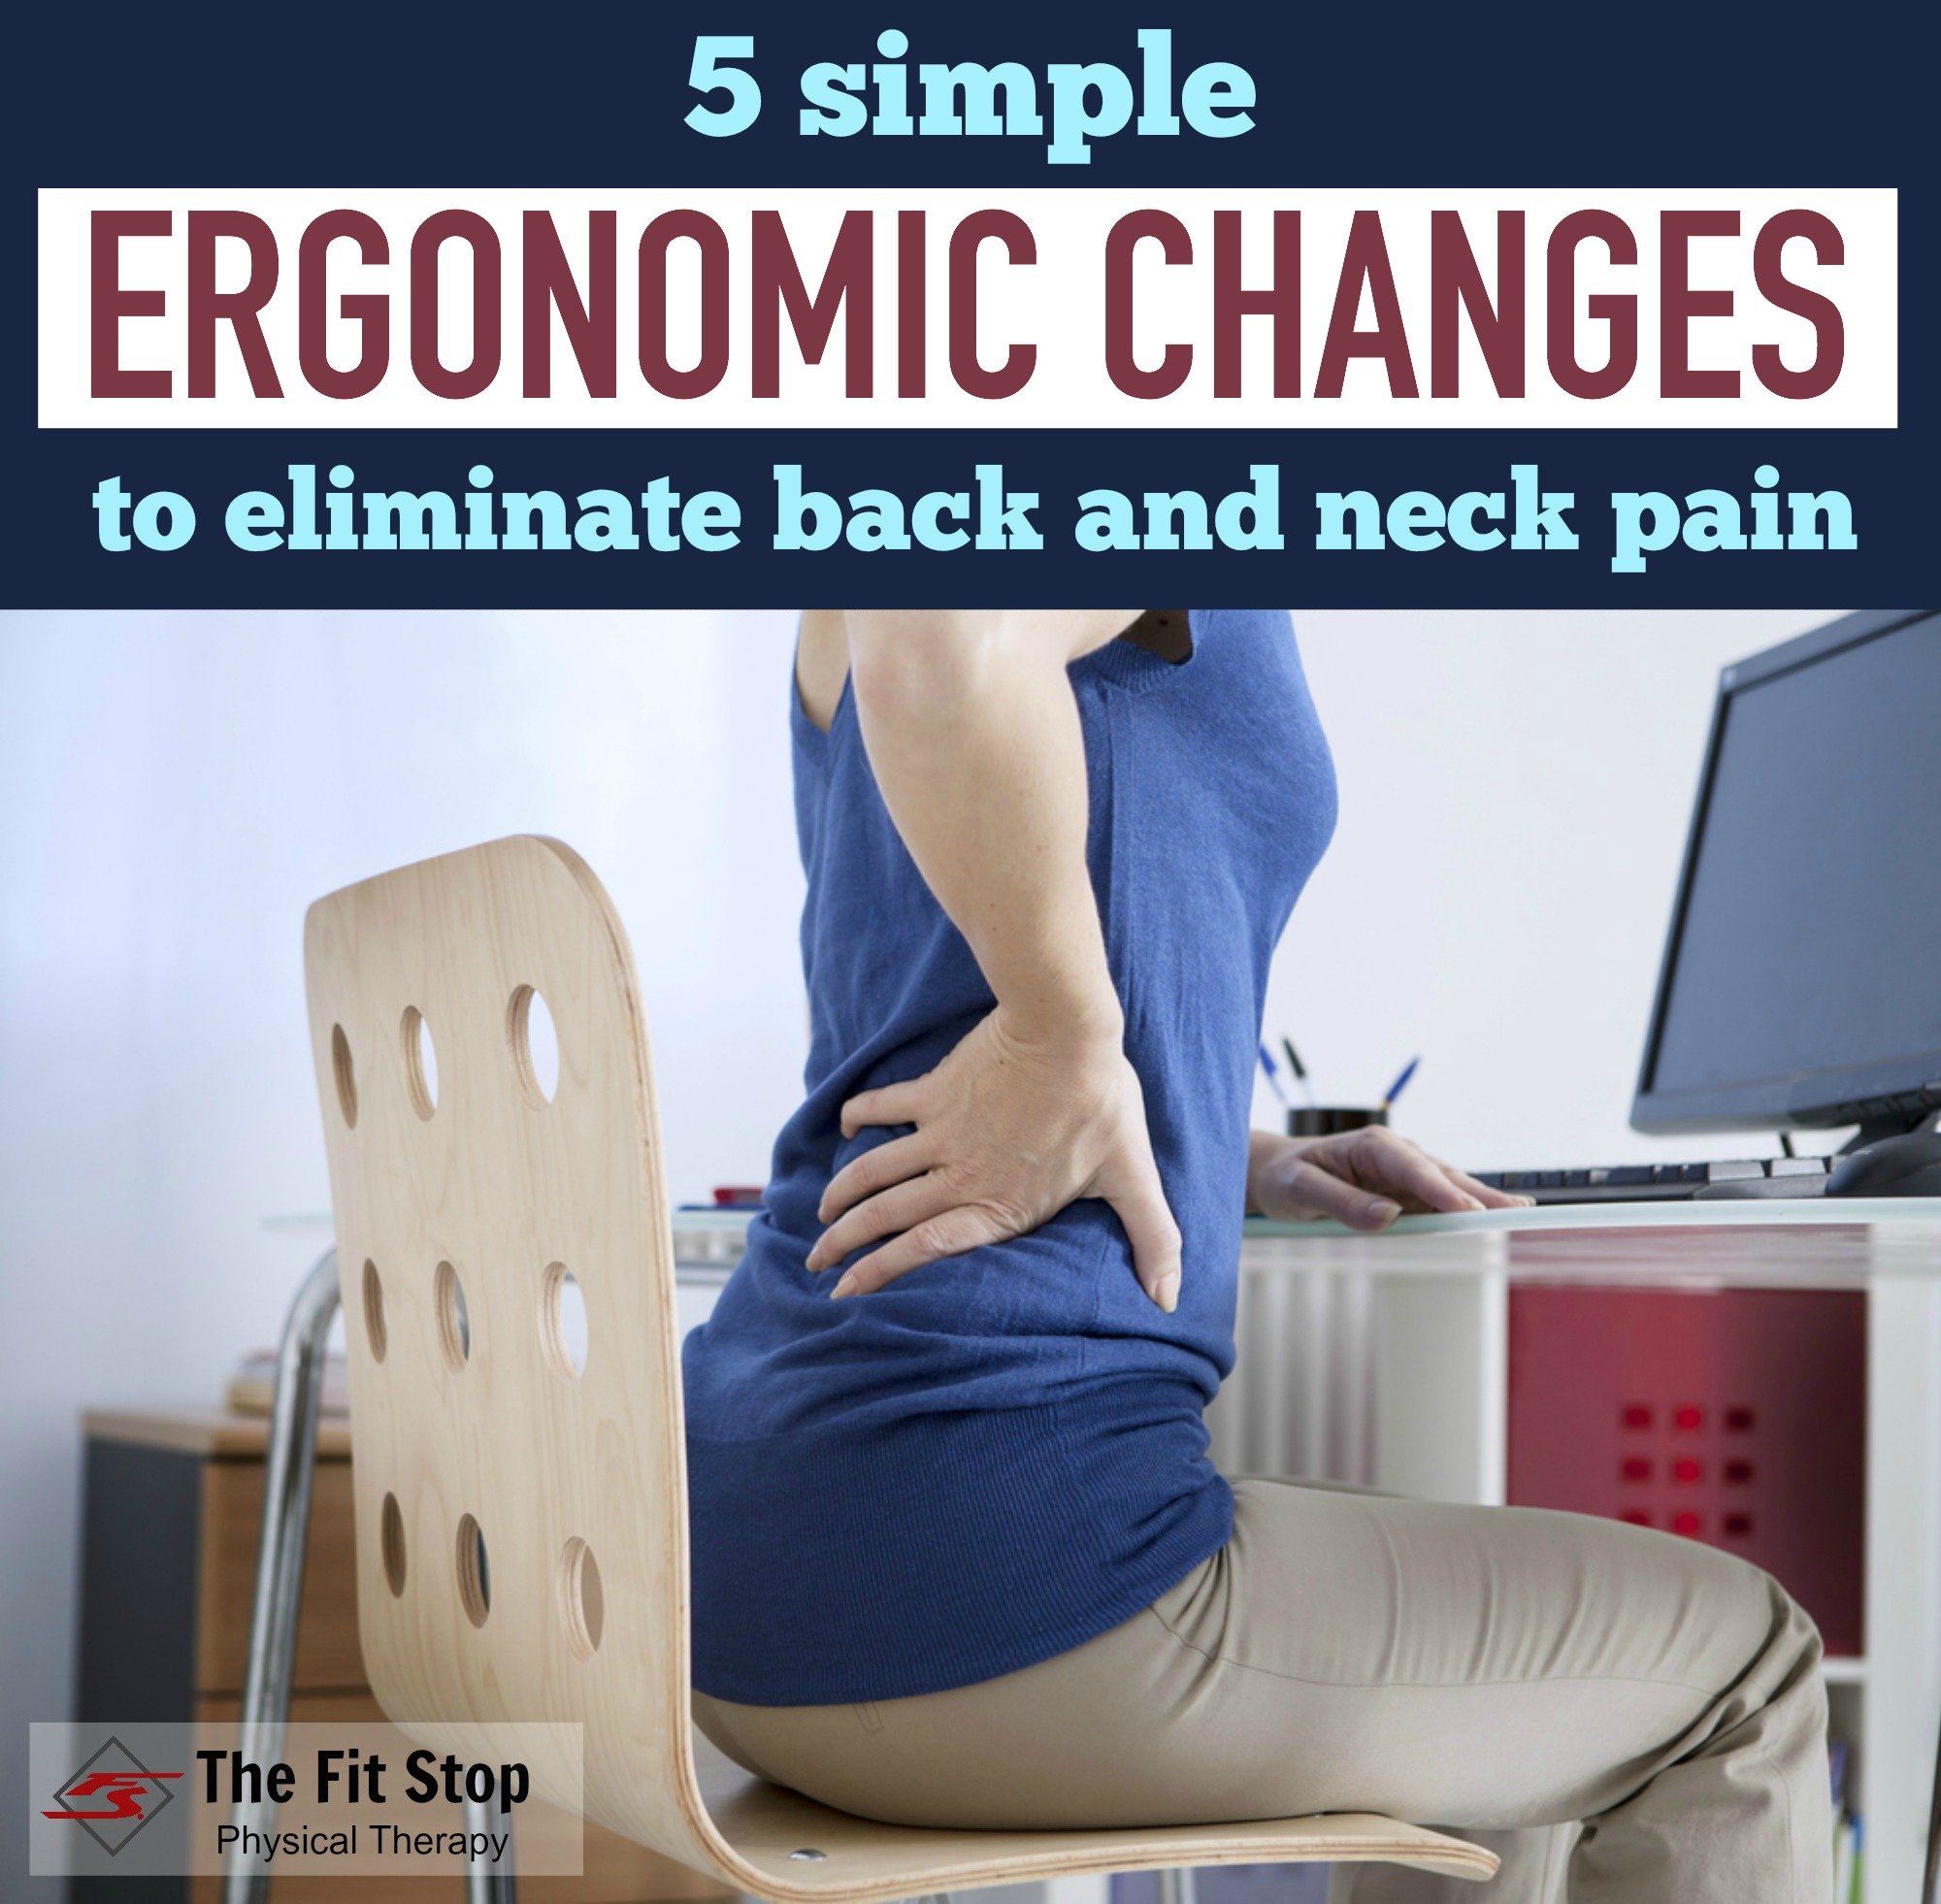 Ergonomics chair - Best Ergonomic Fixes For Pain Fit Stop Physical Therapy